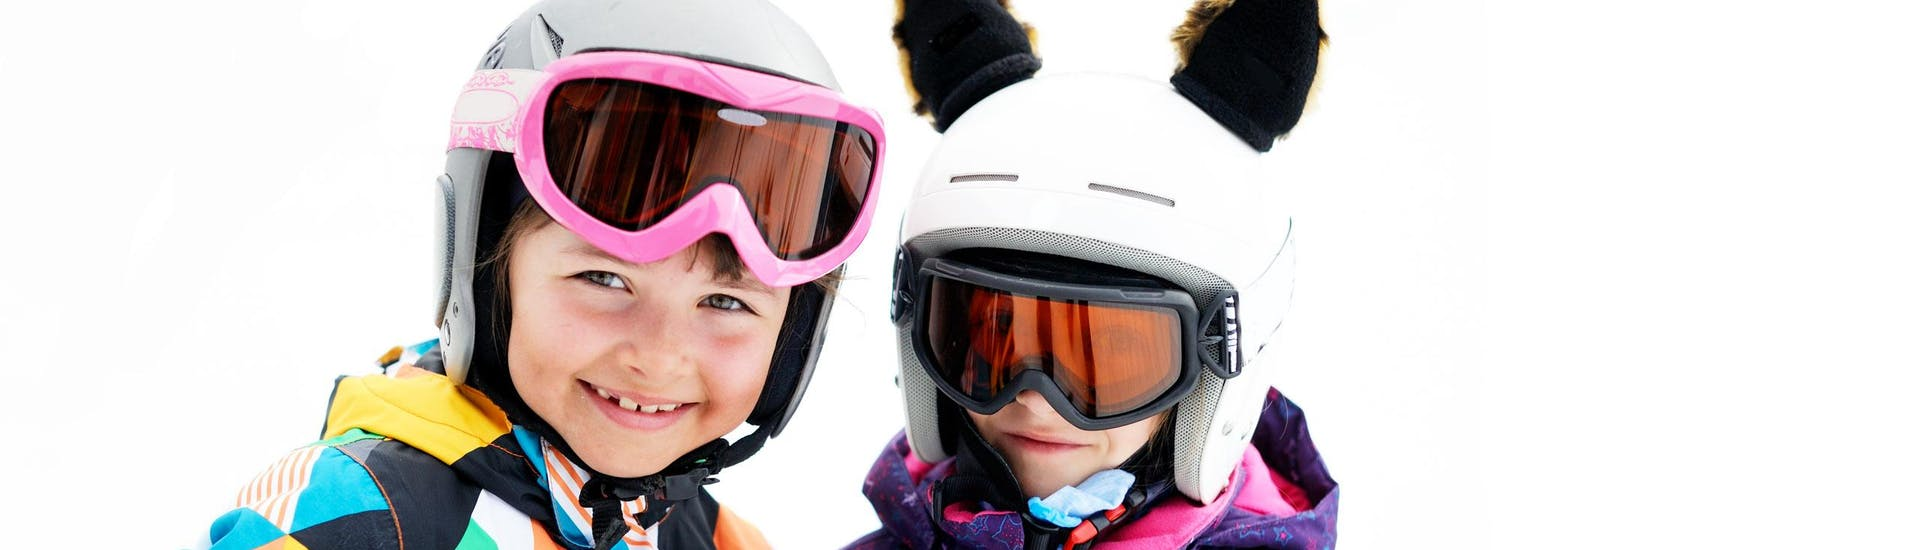 Two young children smiling at the camera during one of the Customized ski- and snowboard training for kids and teenager organised by Daniel Kleinlercher.